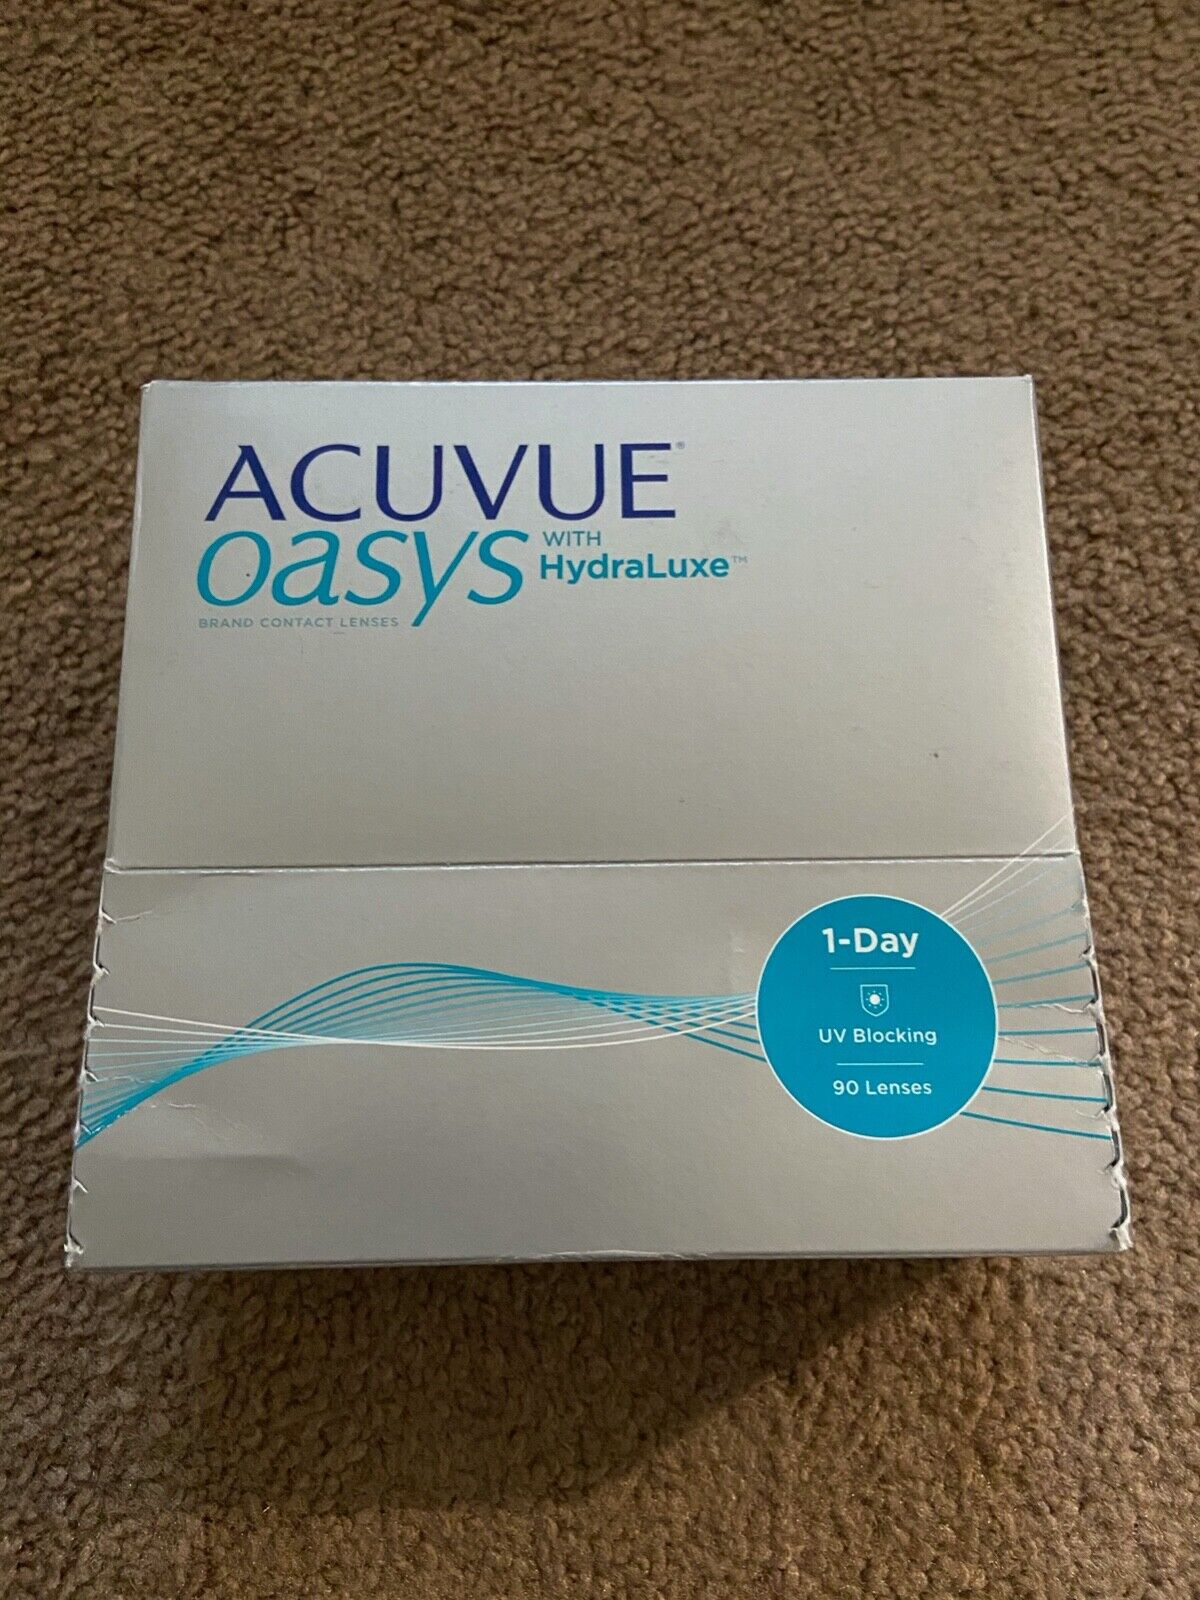 1-day Acuvu Oasis With Hydralux D -2.75, DIA 14.3, BC 8.5  - $66.06